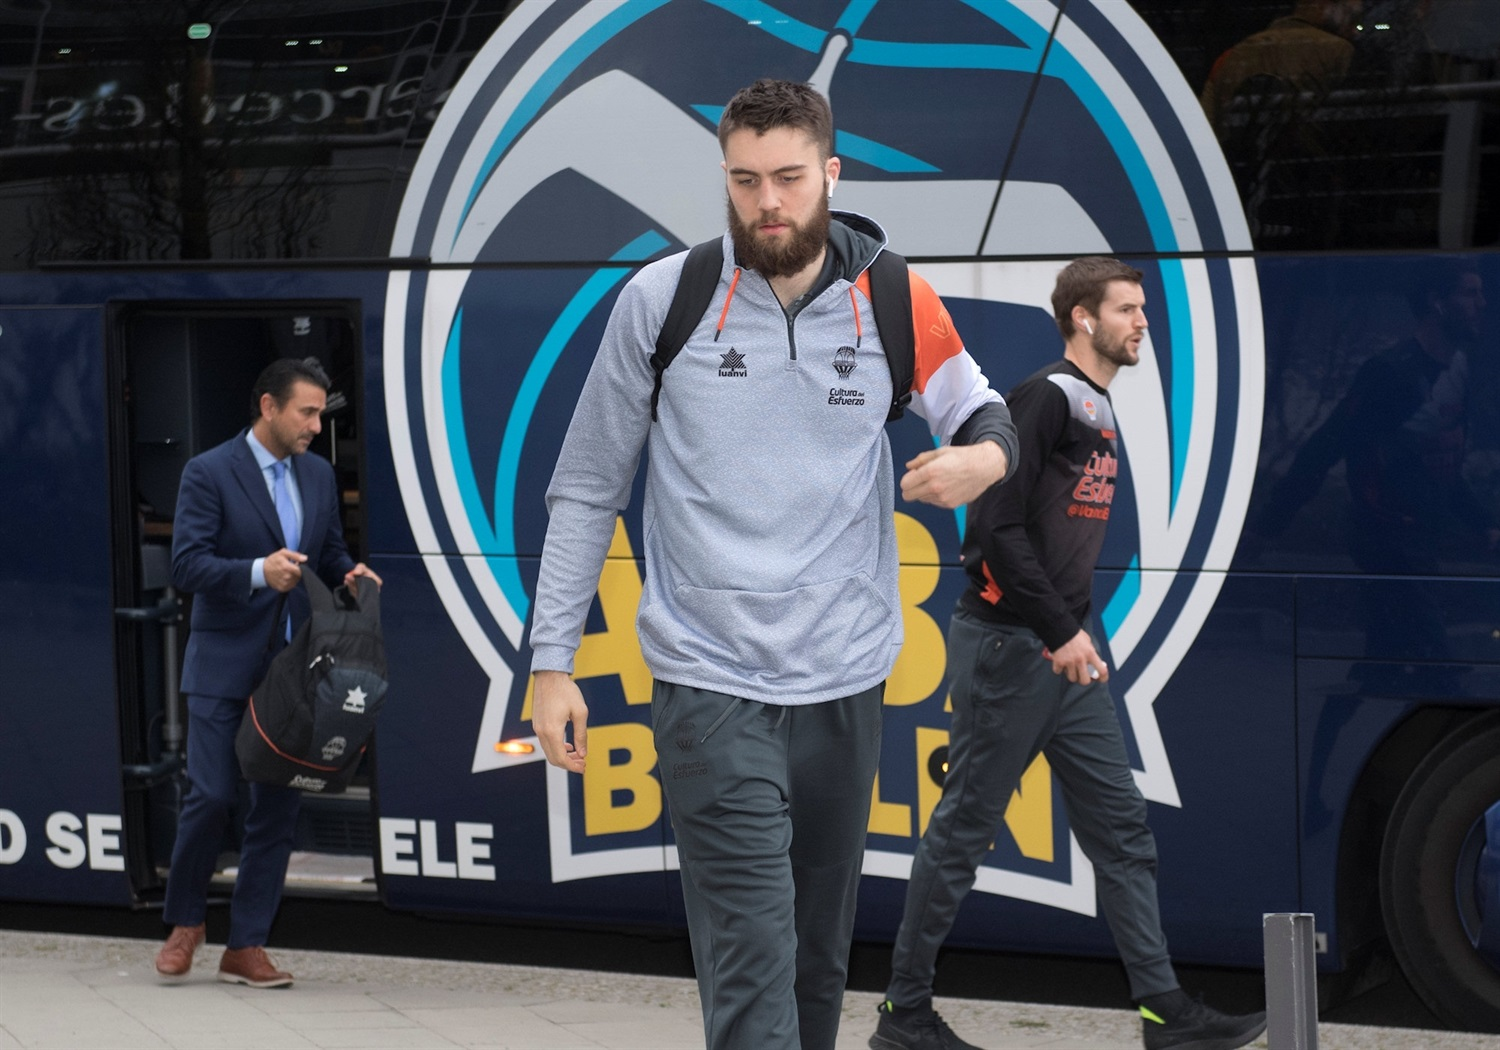 Mike Tobey - Valencia Basket arrival Mercedes-Benz Arena - Finals Game 2 - EC18